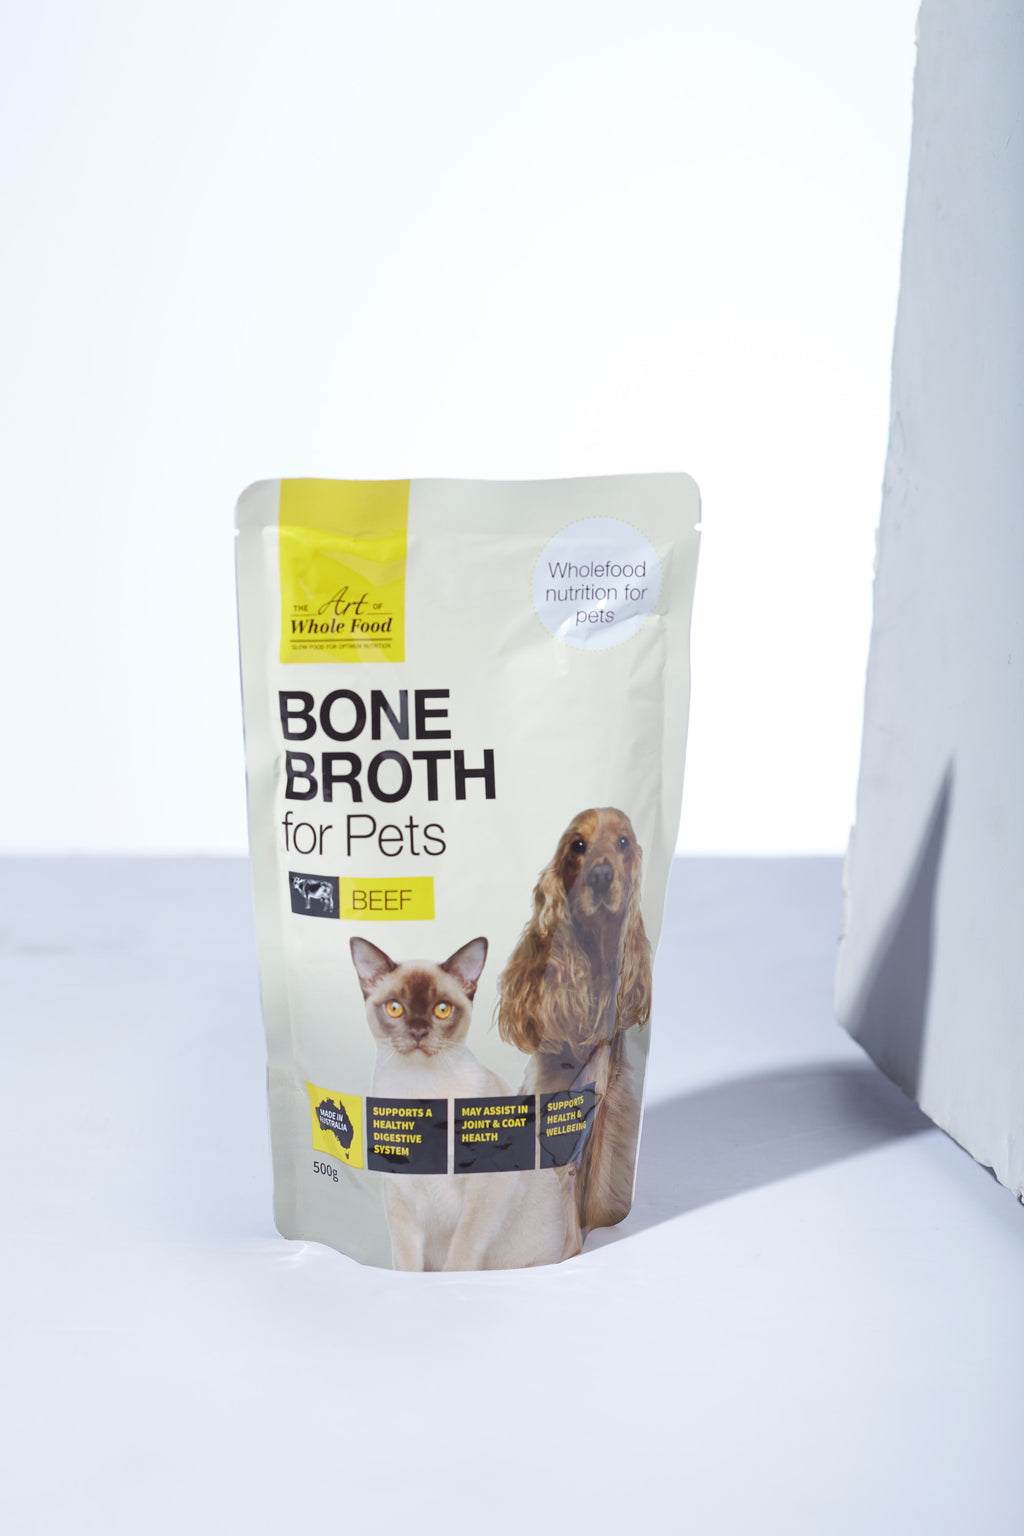 The Art of Whole Food Beef Bone Broth 500g